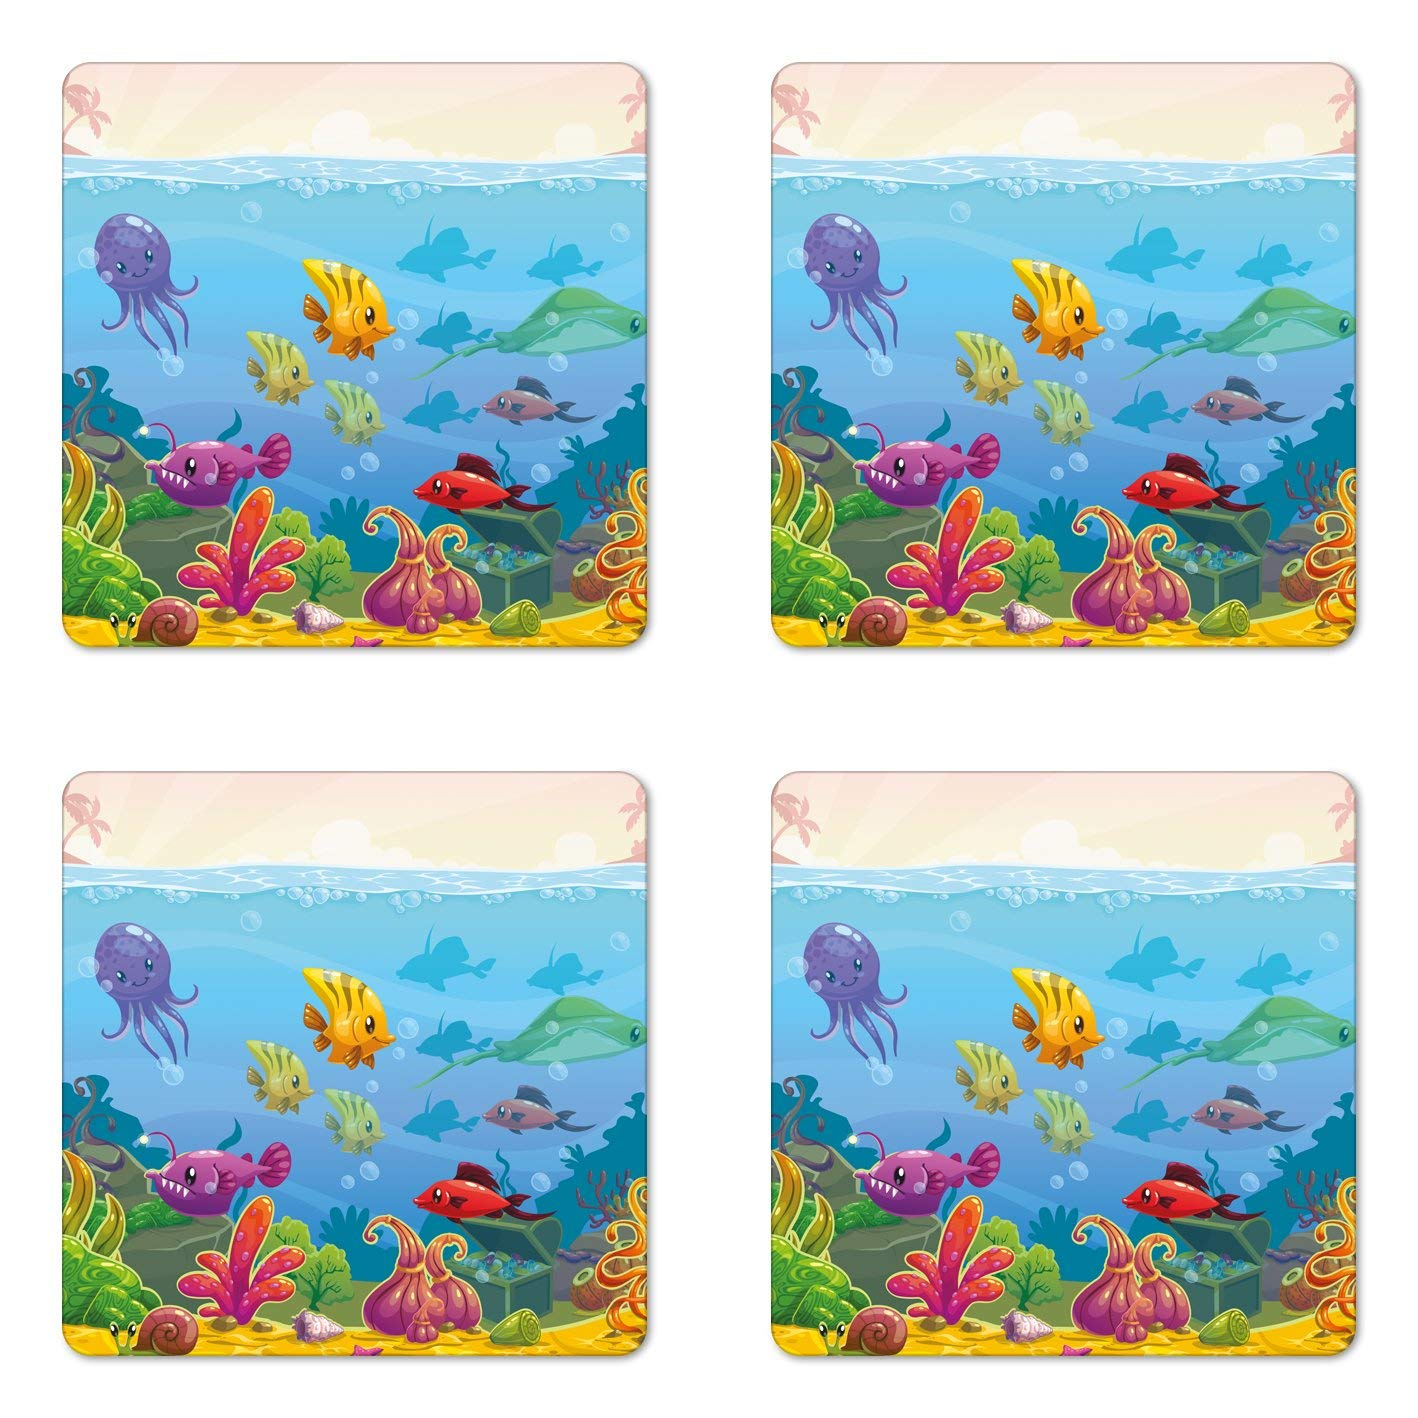 Lunarable Aquarium Coaster Set of Four, Funny Cartoon Style Underwater Scenery with Various Animals and Treasure Chest, Square Hardboard Gloss Coasters for Drinks, Multicolor